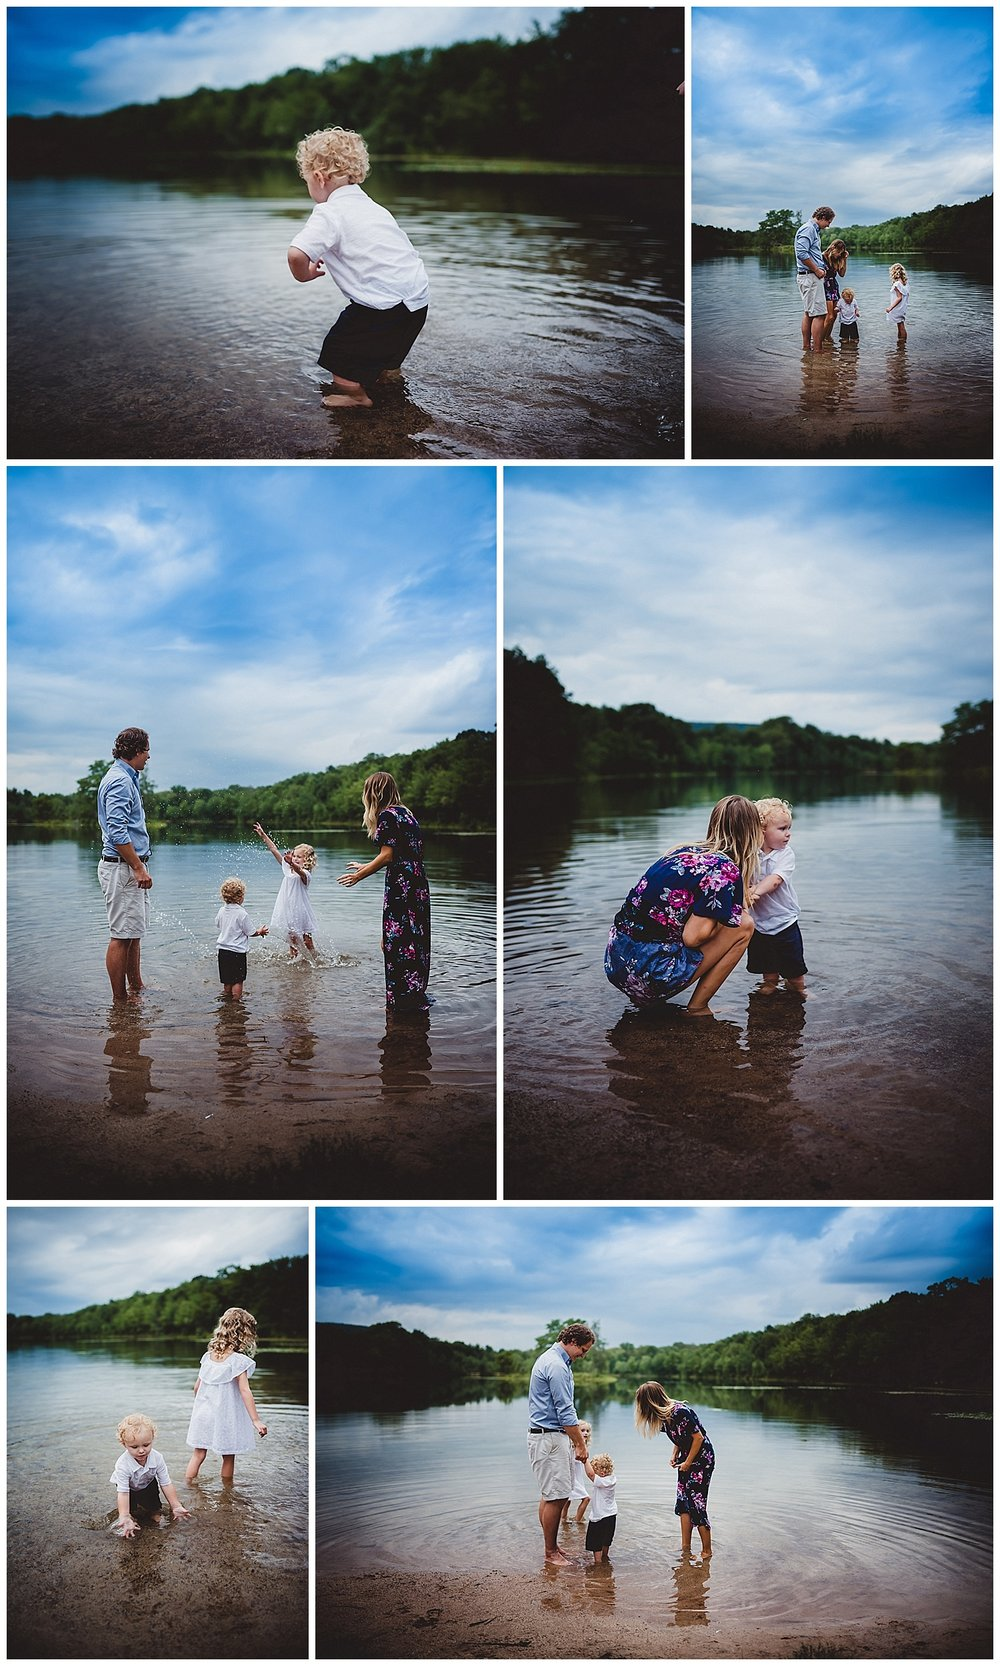 NEPA Family Photographer in Scranton, Pennsylvania